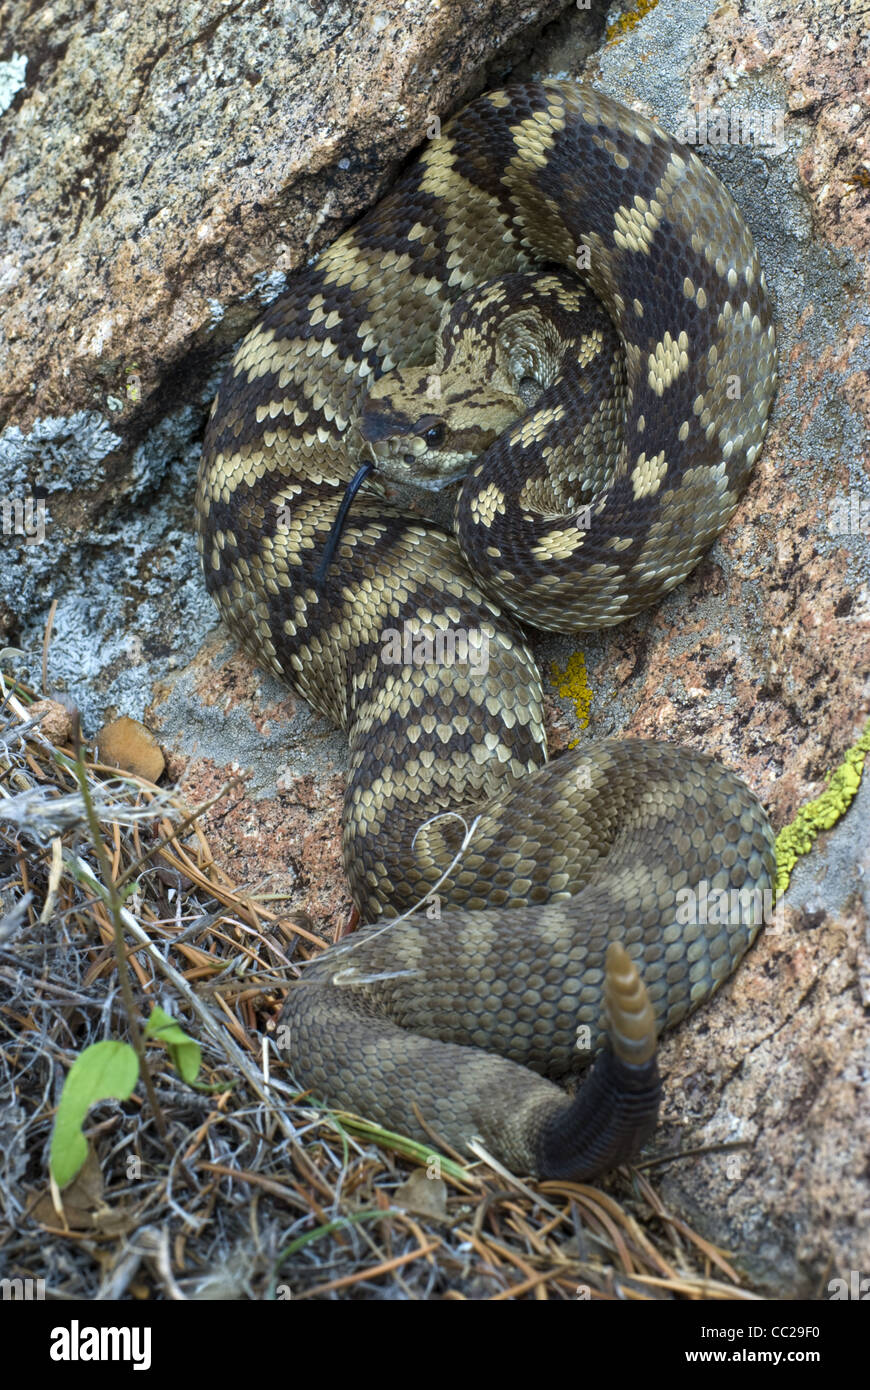 Northern blacktailed rattlesnake crotalus molussus molussus magdalena mountains socorro county new mexico usa